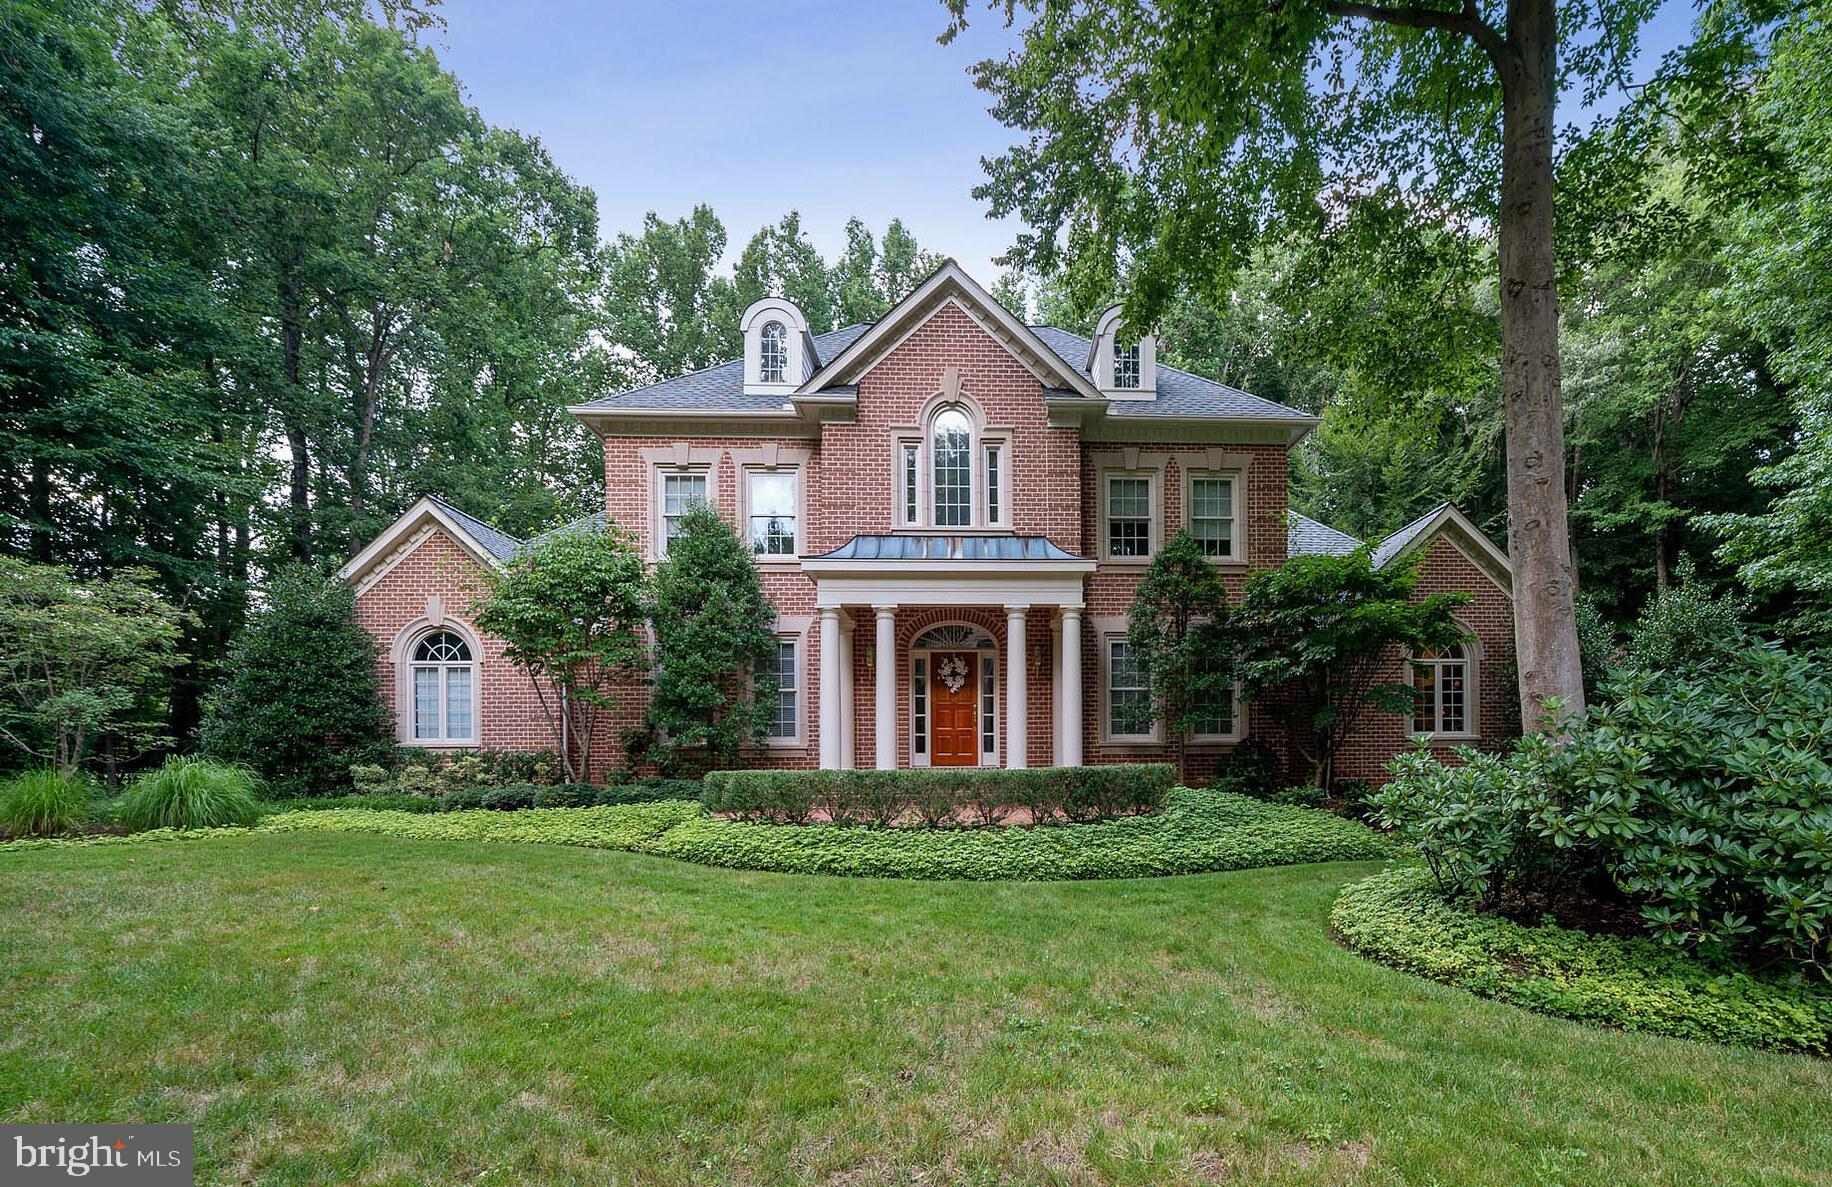 2420 FOX CREEK LANE, DAVIDSONVILLE, MD 21035